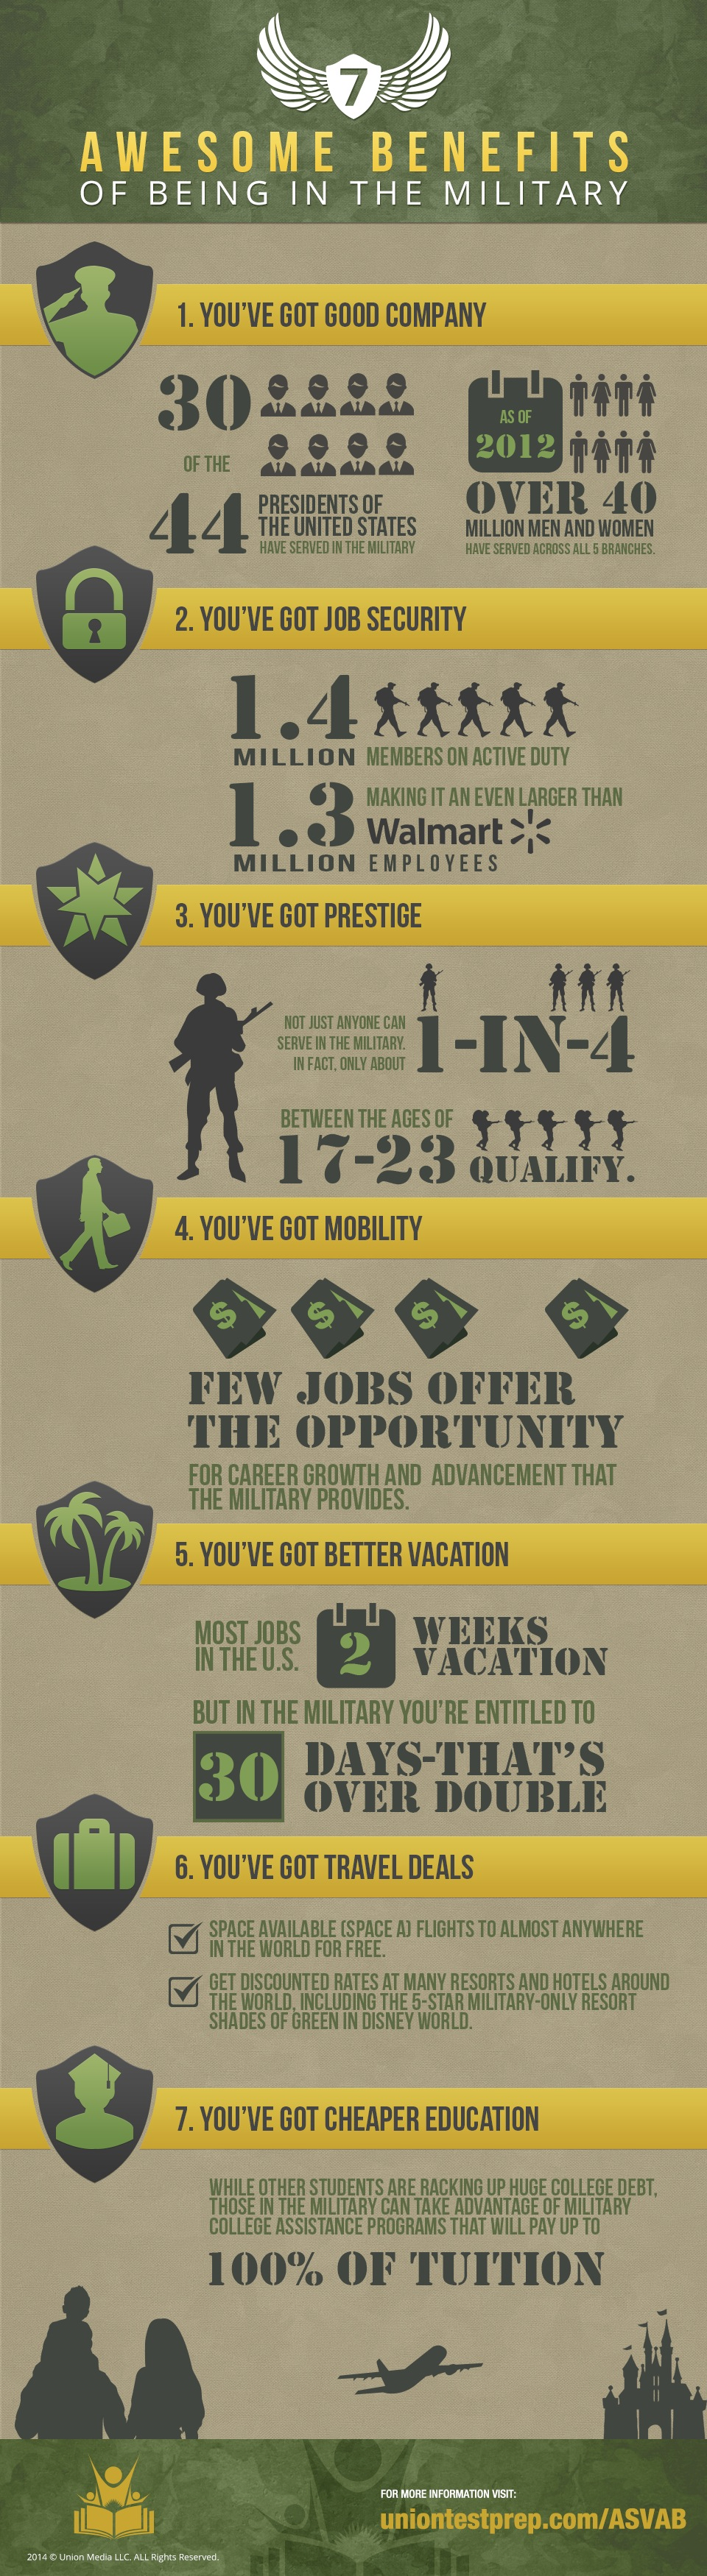 a s v a b 7 awesome benefits of being in the military